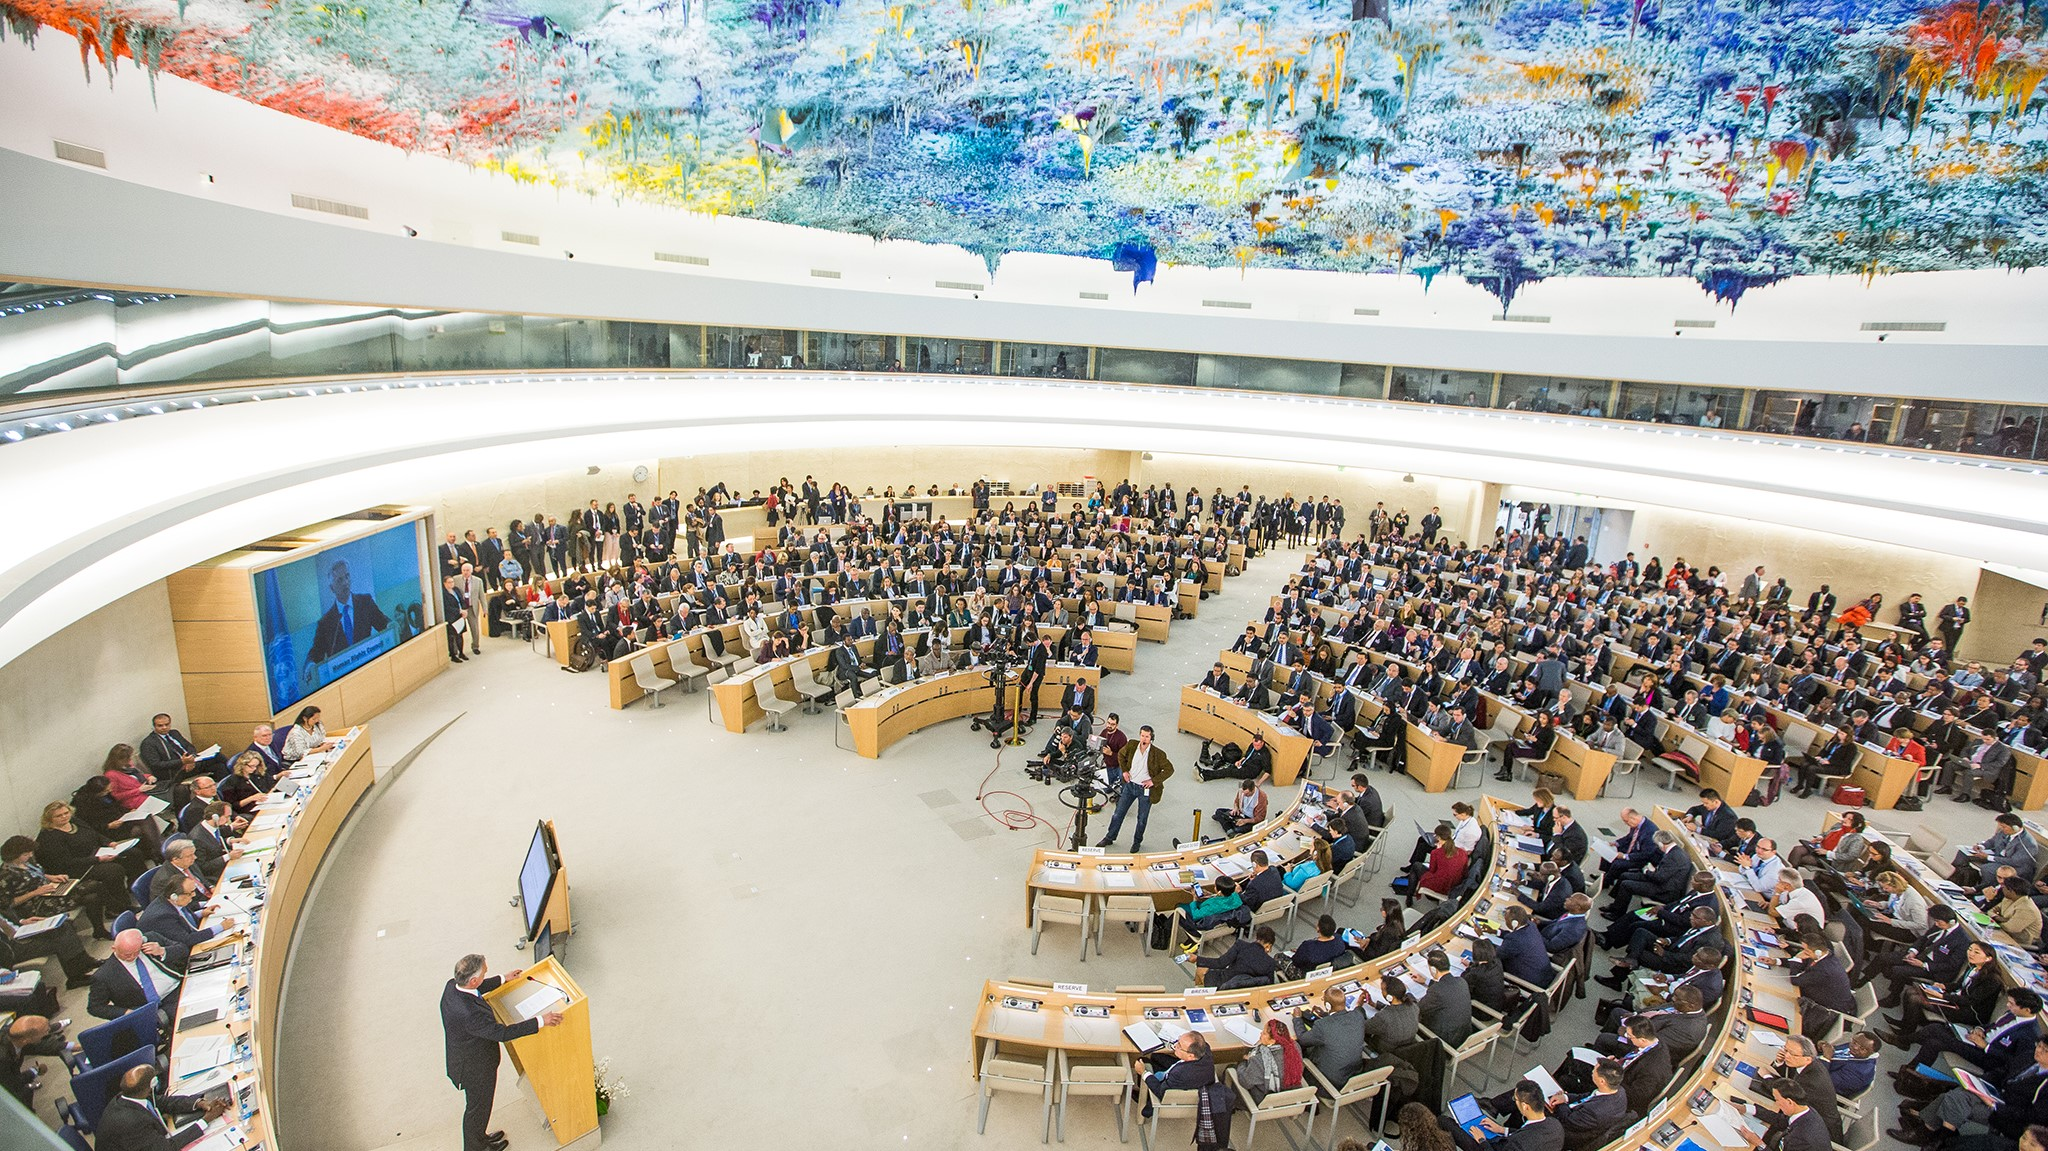 Elma Okic / United Nations (CC BY-NC-ND 2.0)